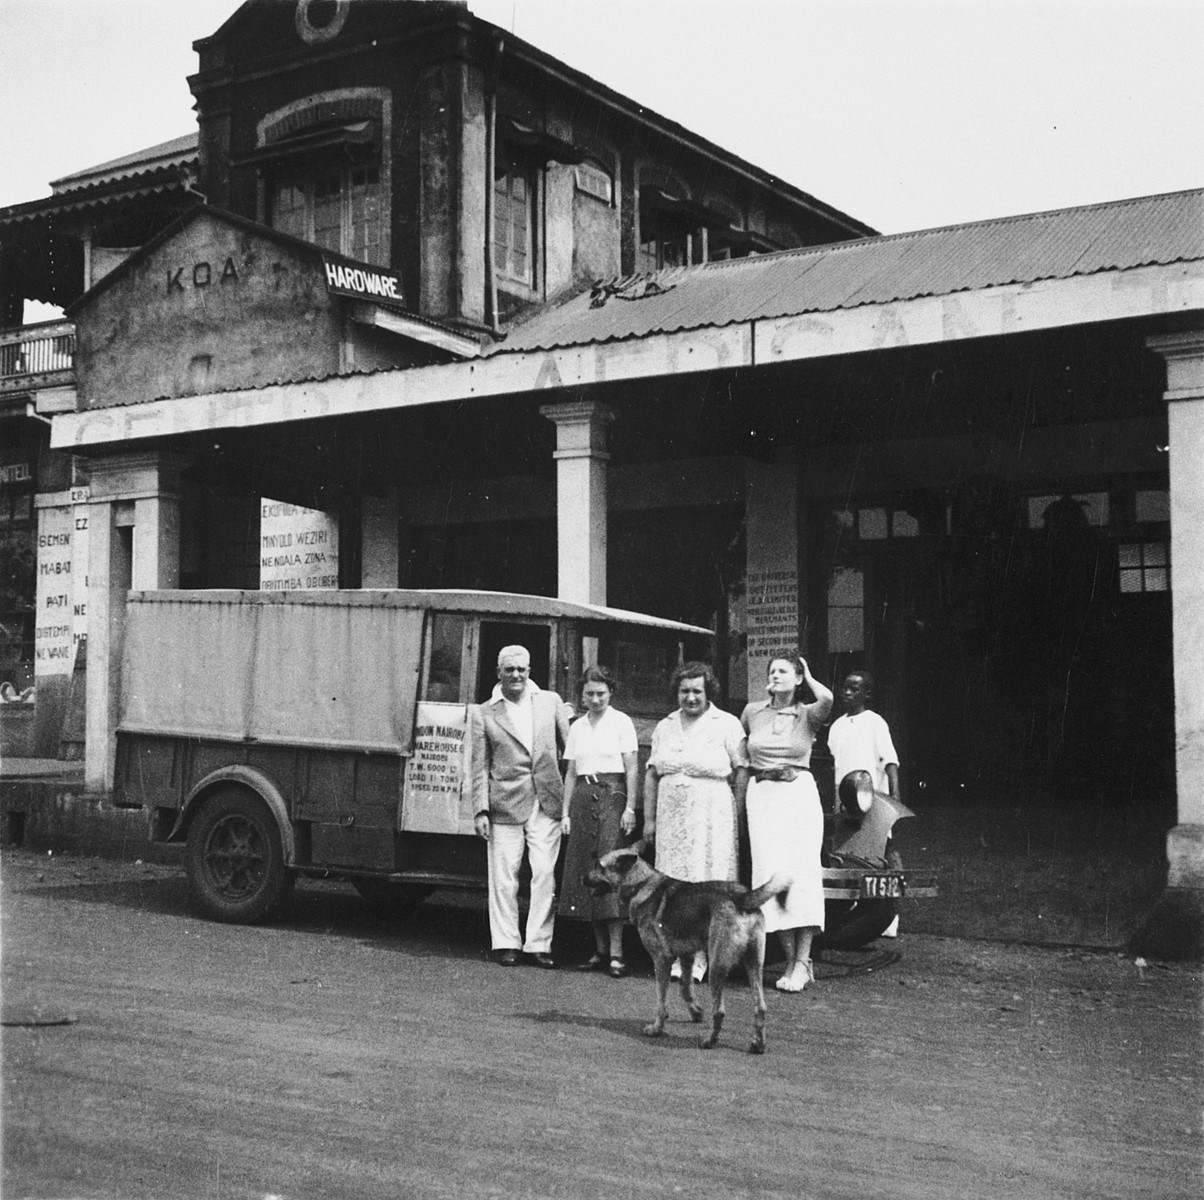 German Jewish refugee Ruth Weyl poses outside a store in Kampala, Uganda with members of an English family who befriended her.